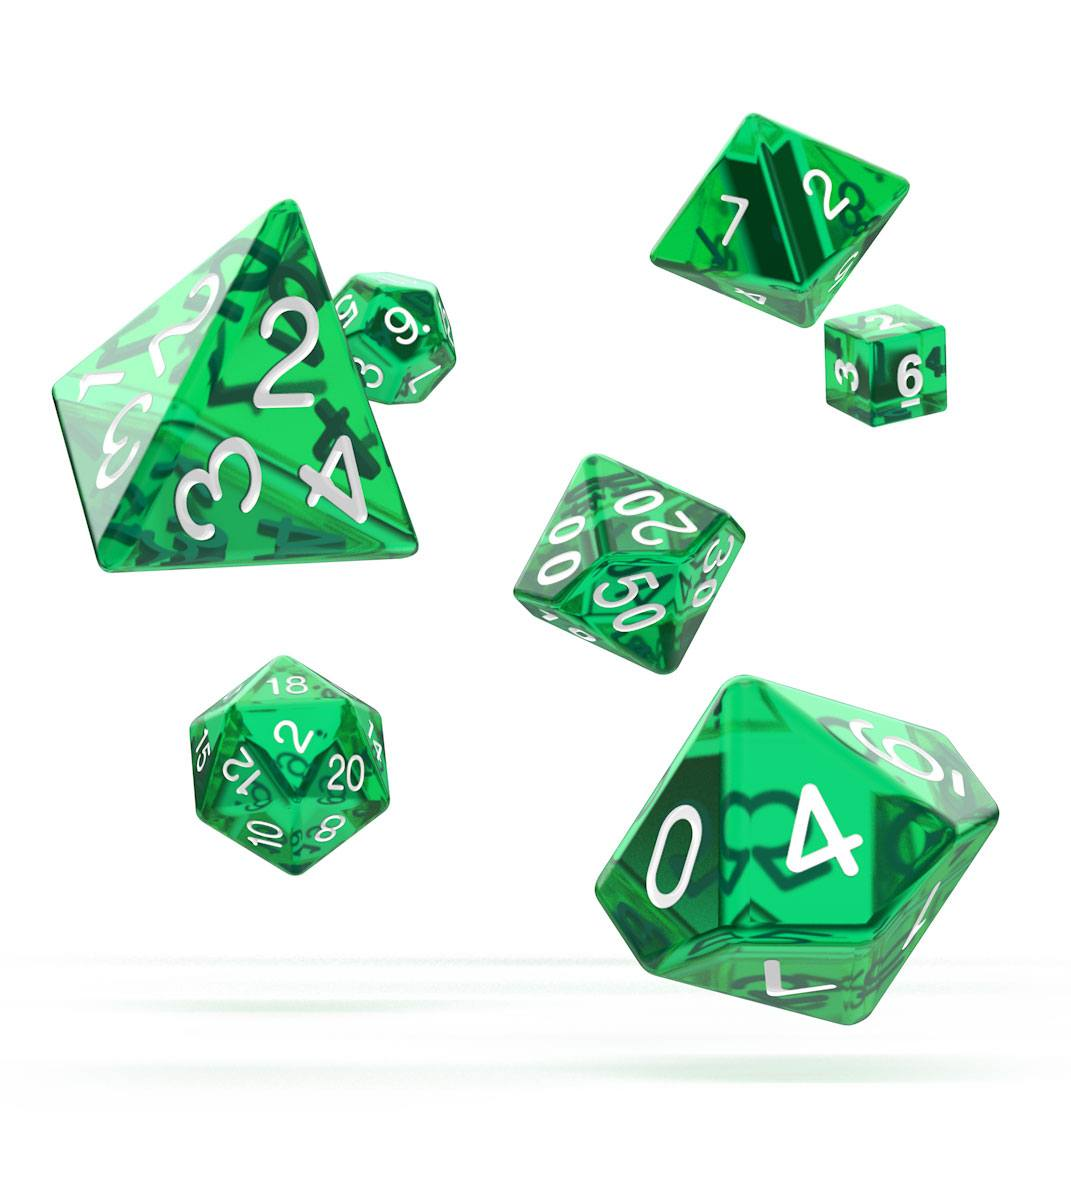 Kocka Set (7) - Oakie Doakie Dice RPG Set Translucent - Green